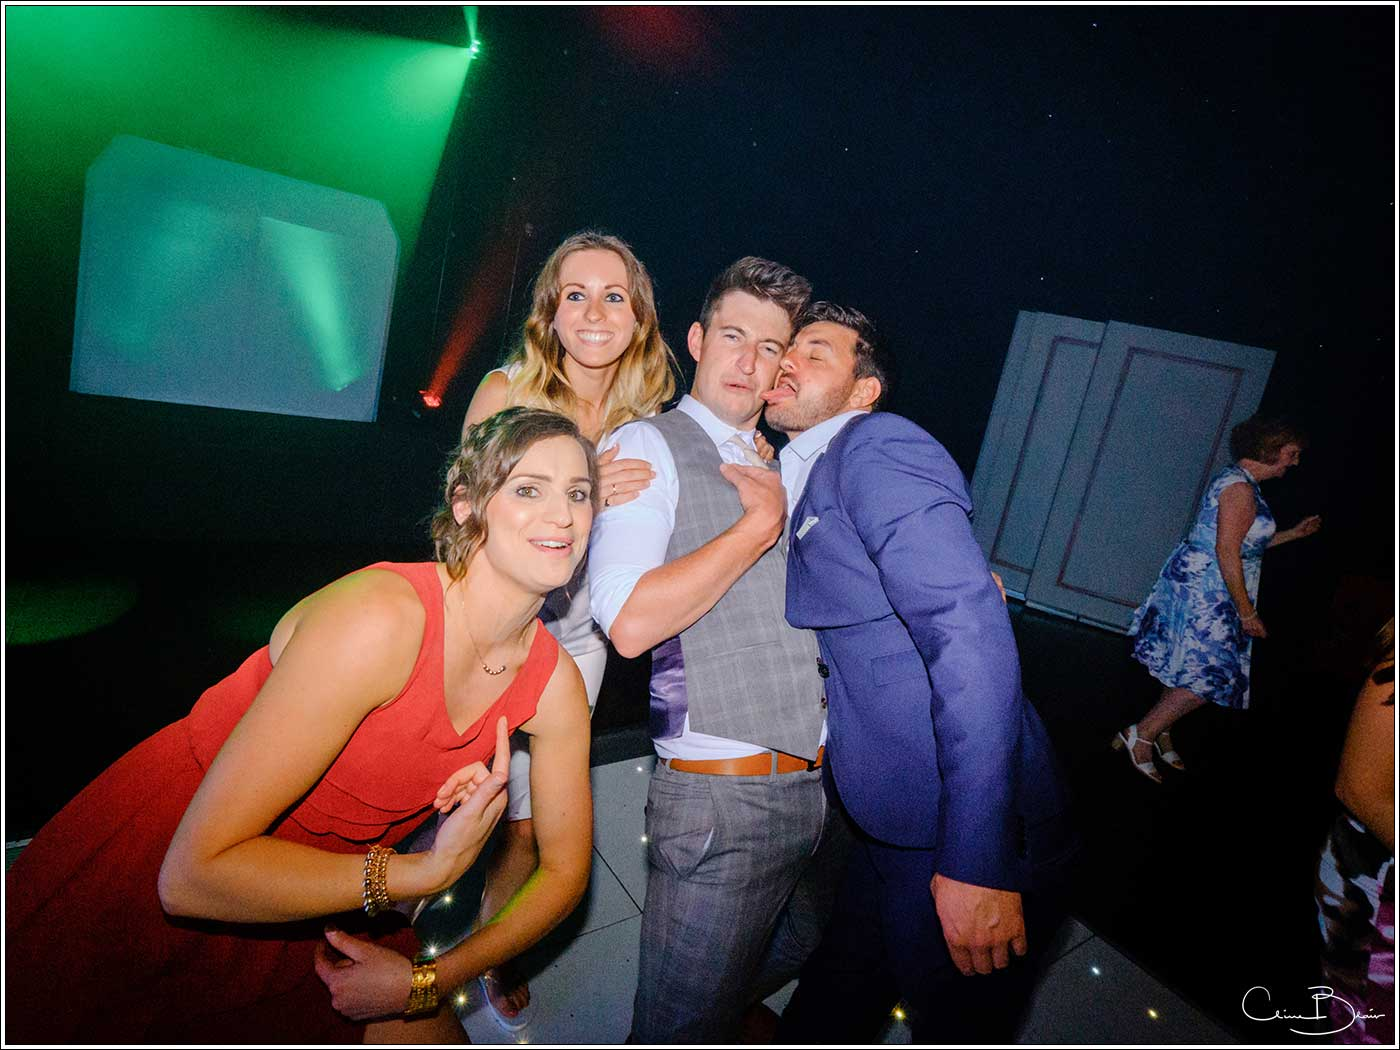 Coombe Abbey wedding photography showing 4 guests playing up to the camera on the dance floor